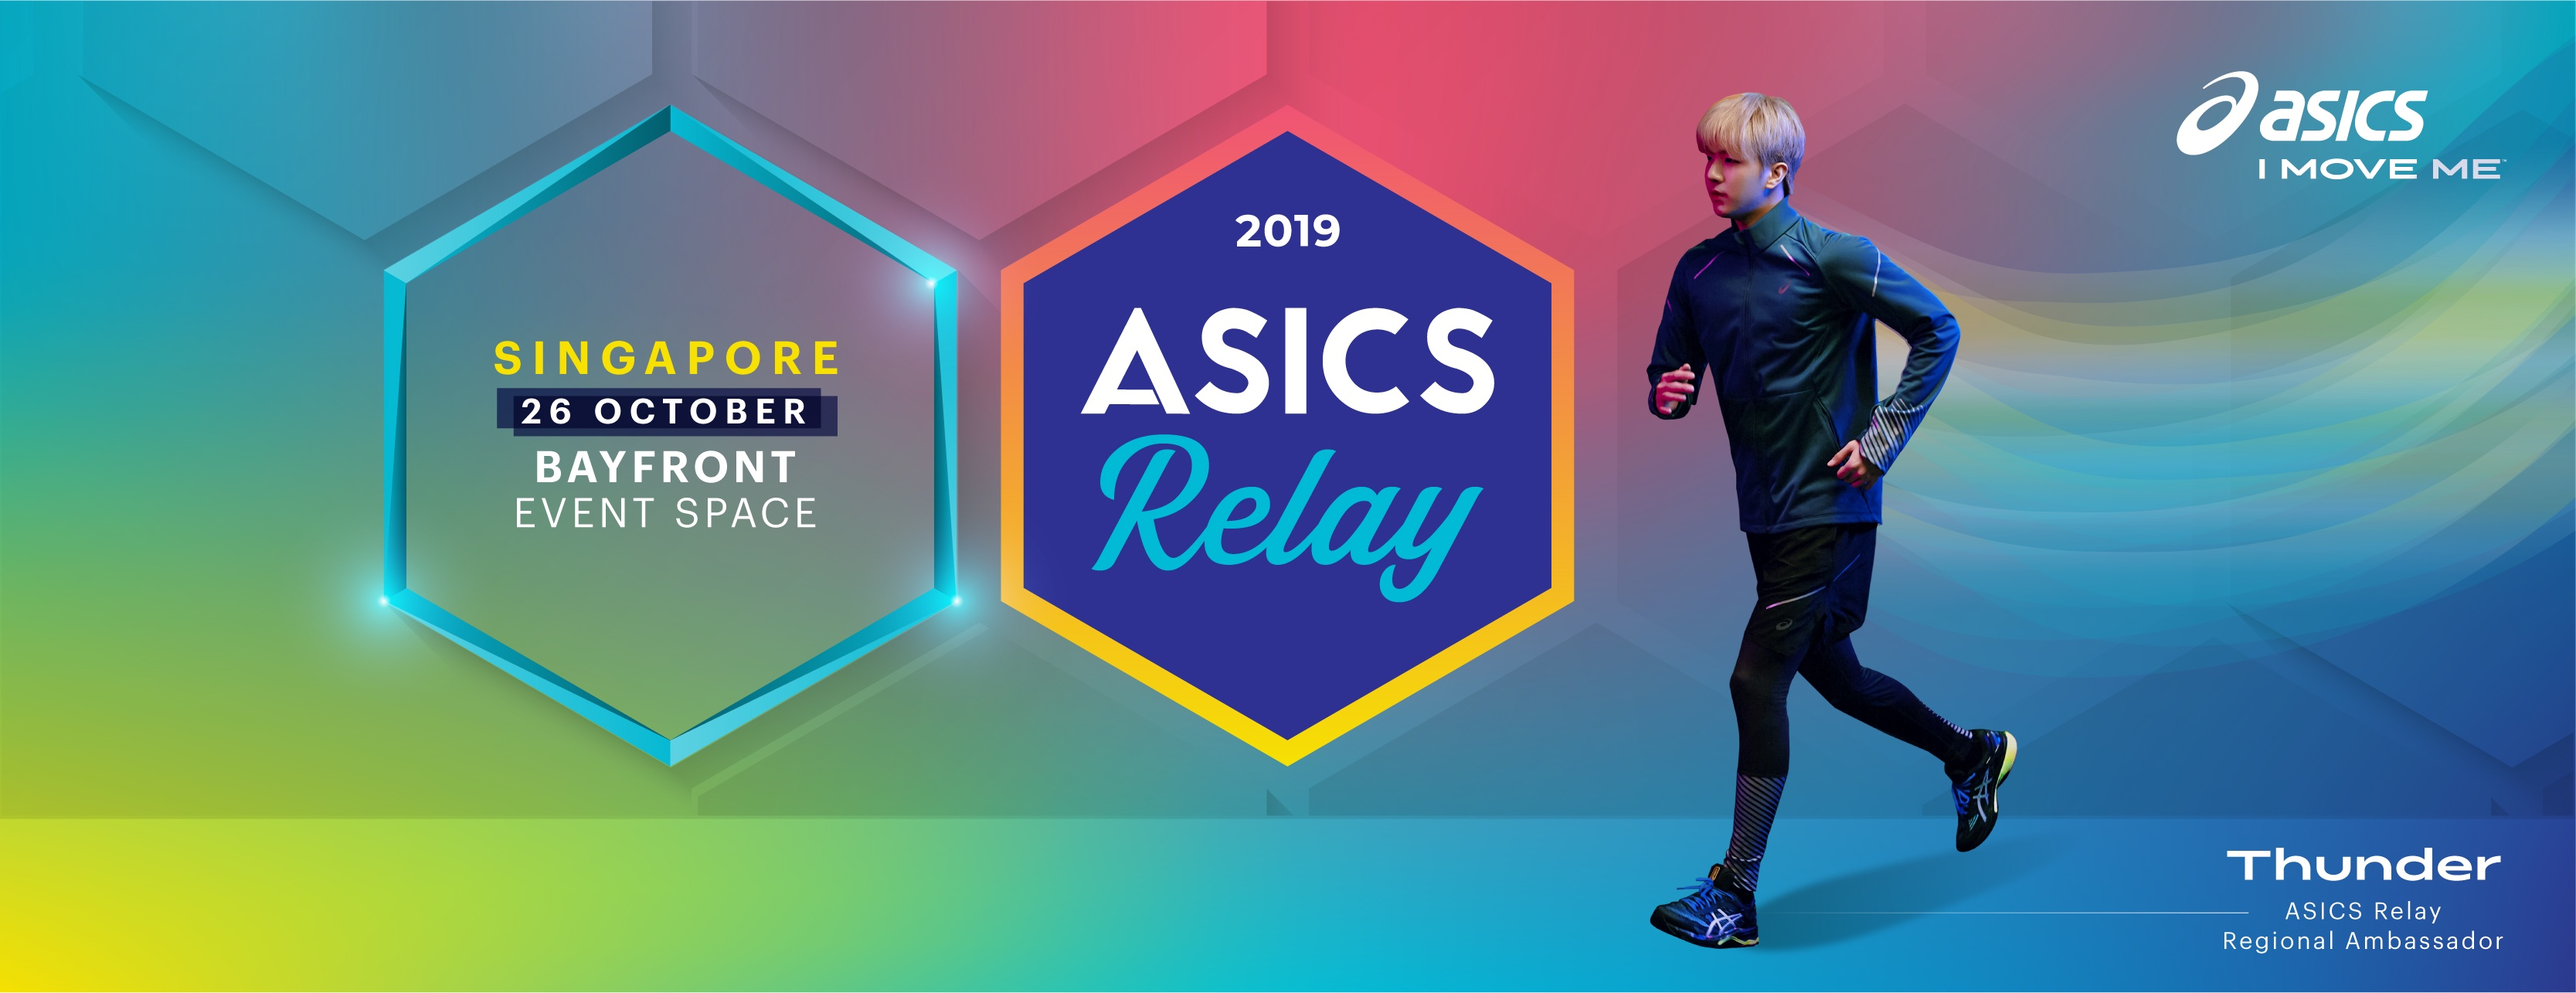 ASICS Relay_Web Banner_SINGAPORE - R